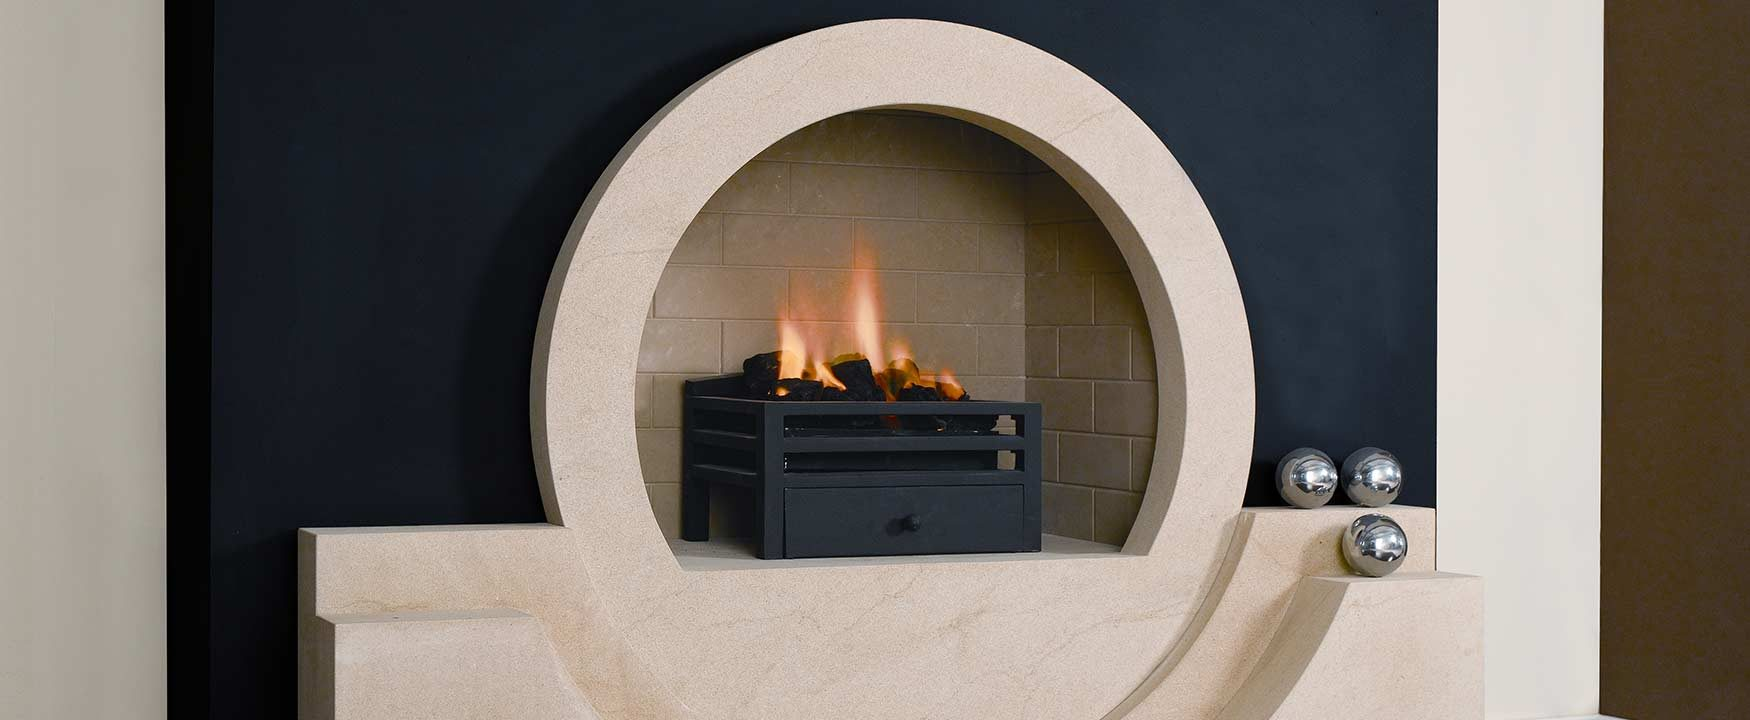 The Halo Fireplace!